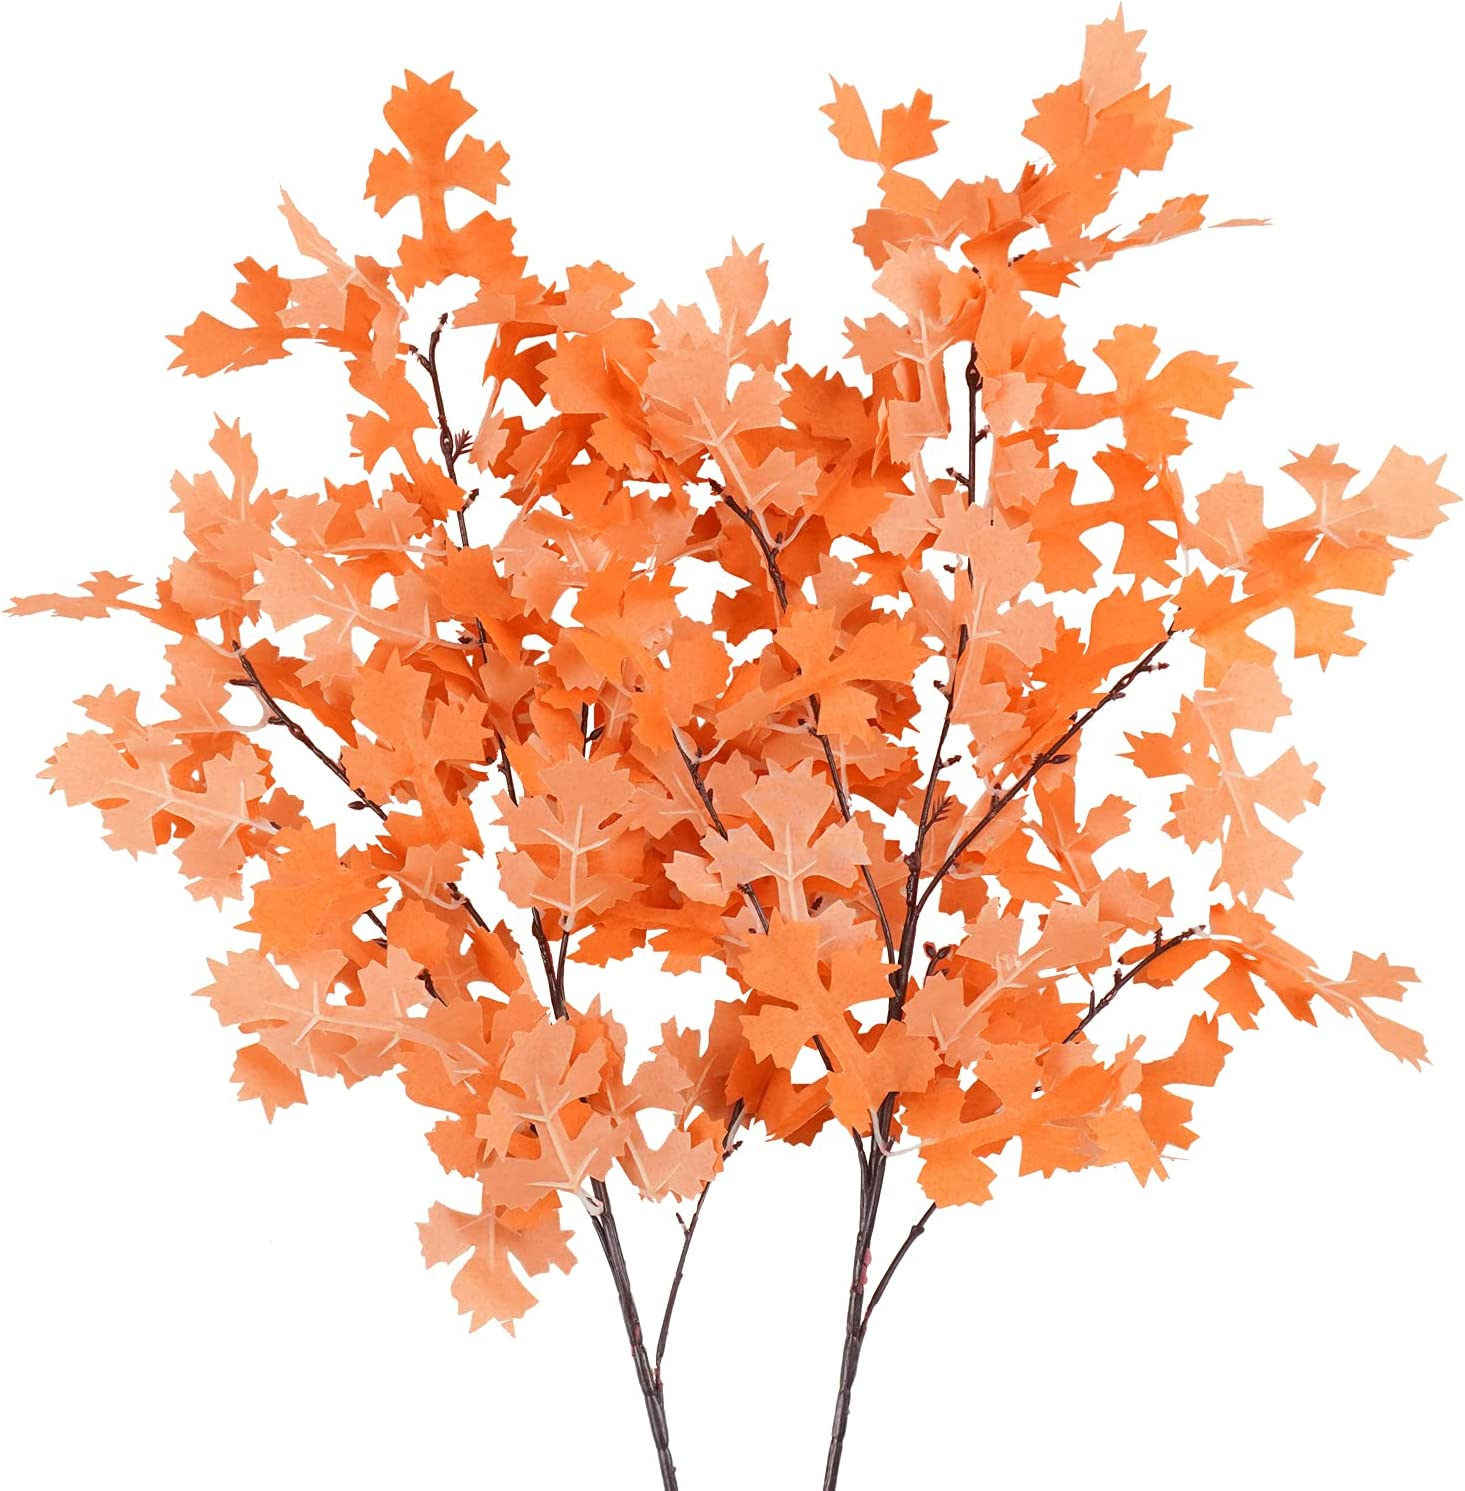 Uieke 2PCS Artificial Maple Leaves Branches Fall Leaves Stems Décor Autumn Greenery Shrubs Plants for Indoor Outdoor Home Kitchen Festival Fireplace Table Thanksgiving Centerpieces Decoration Orange